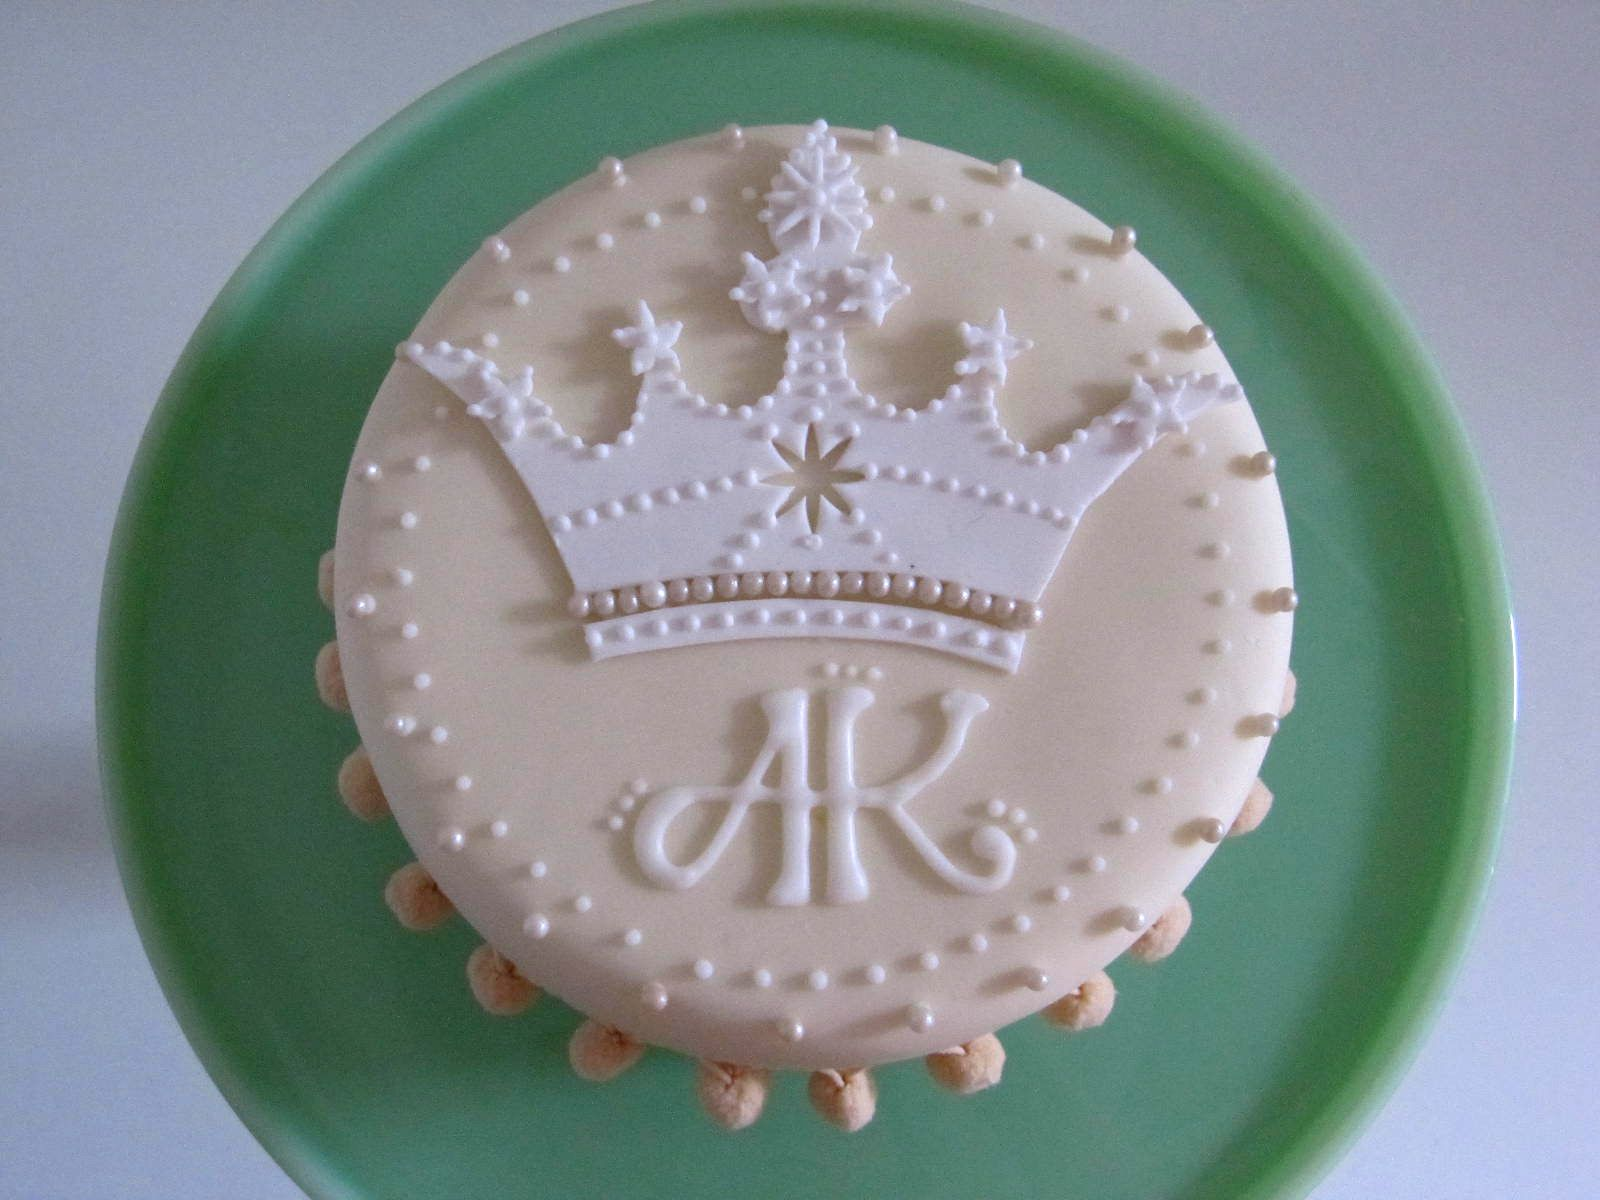 Crown And Monogram Birthday Cake Style  Pinterest Monogram - Monogram birthday cakes